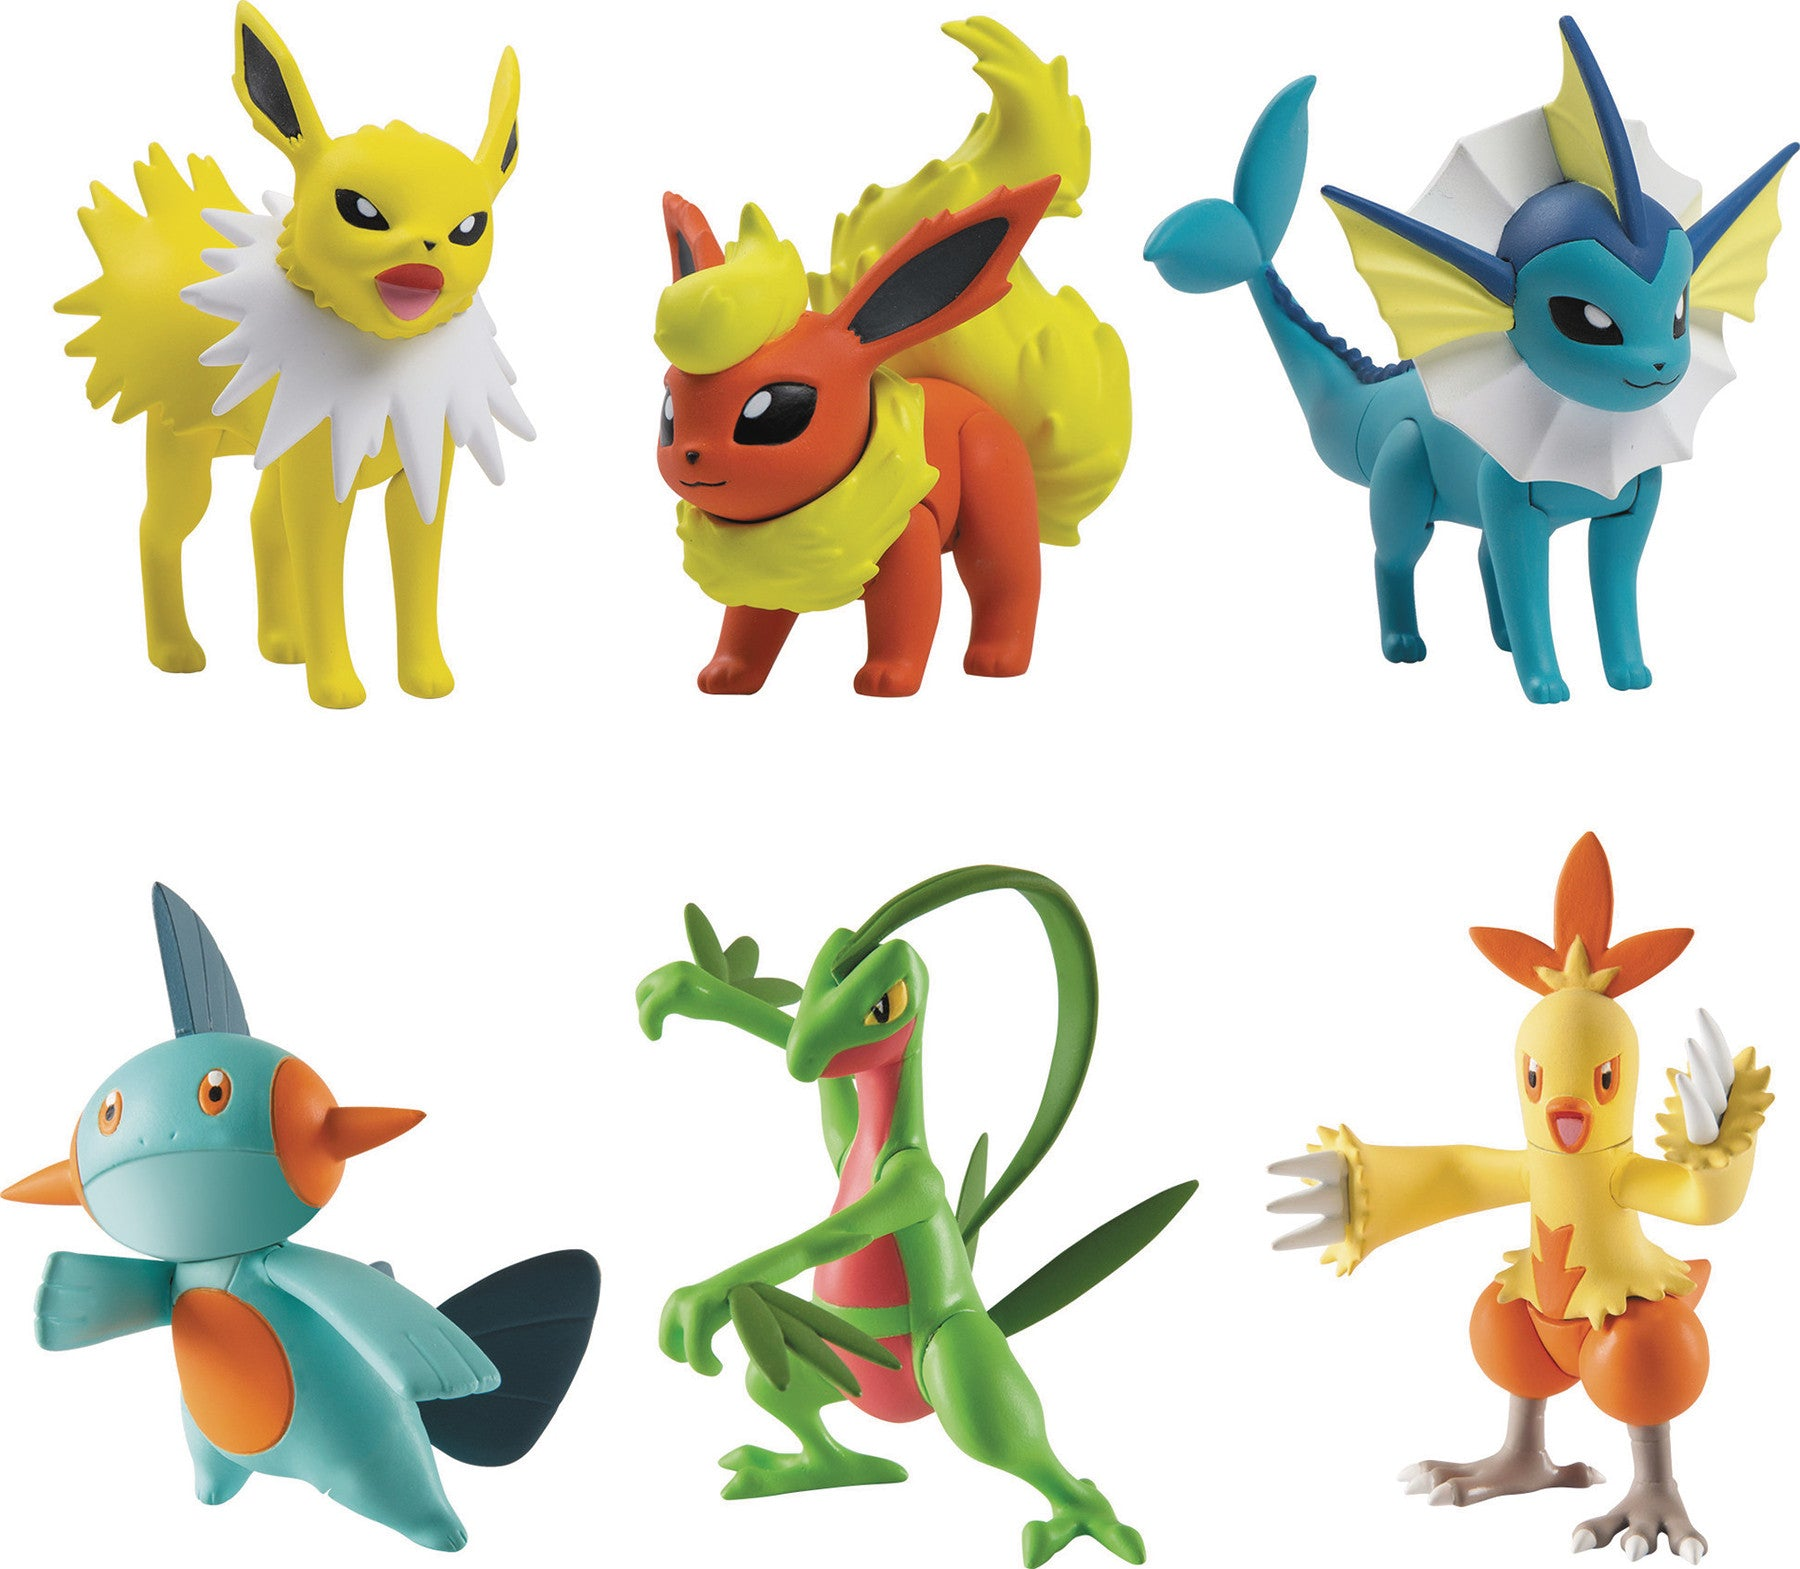 POKEMON ACTION POSE 3PK FIG ASST